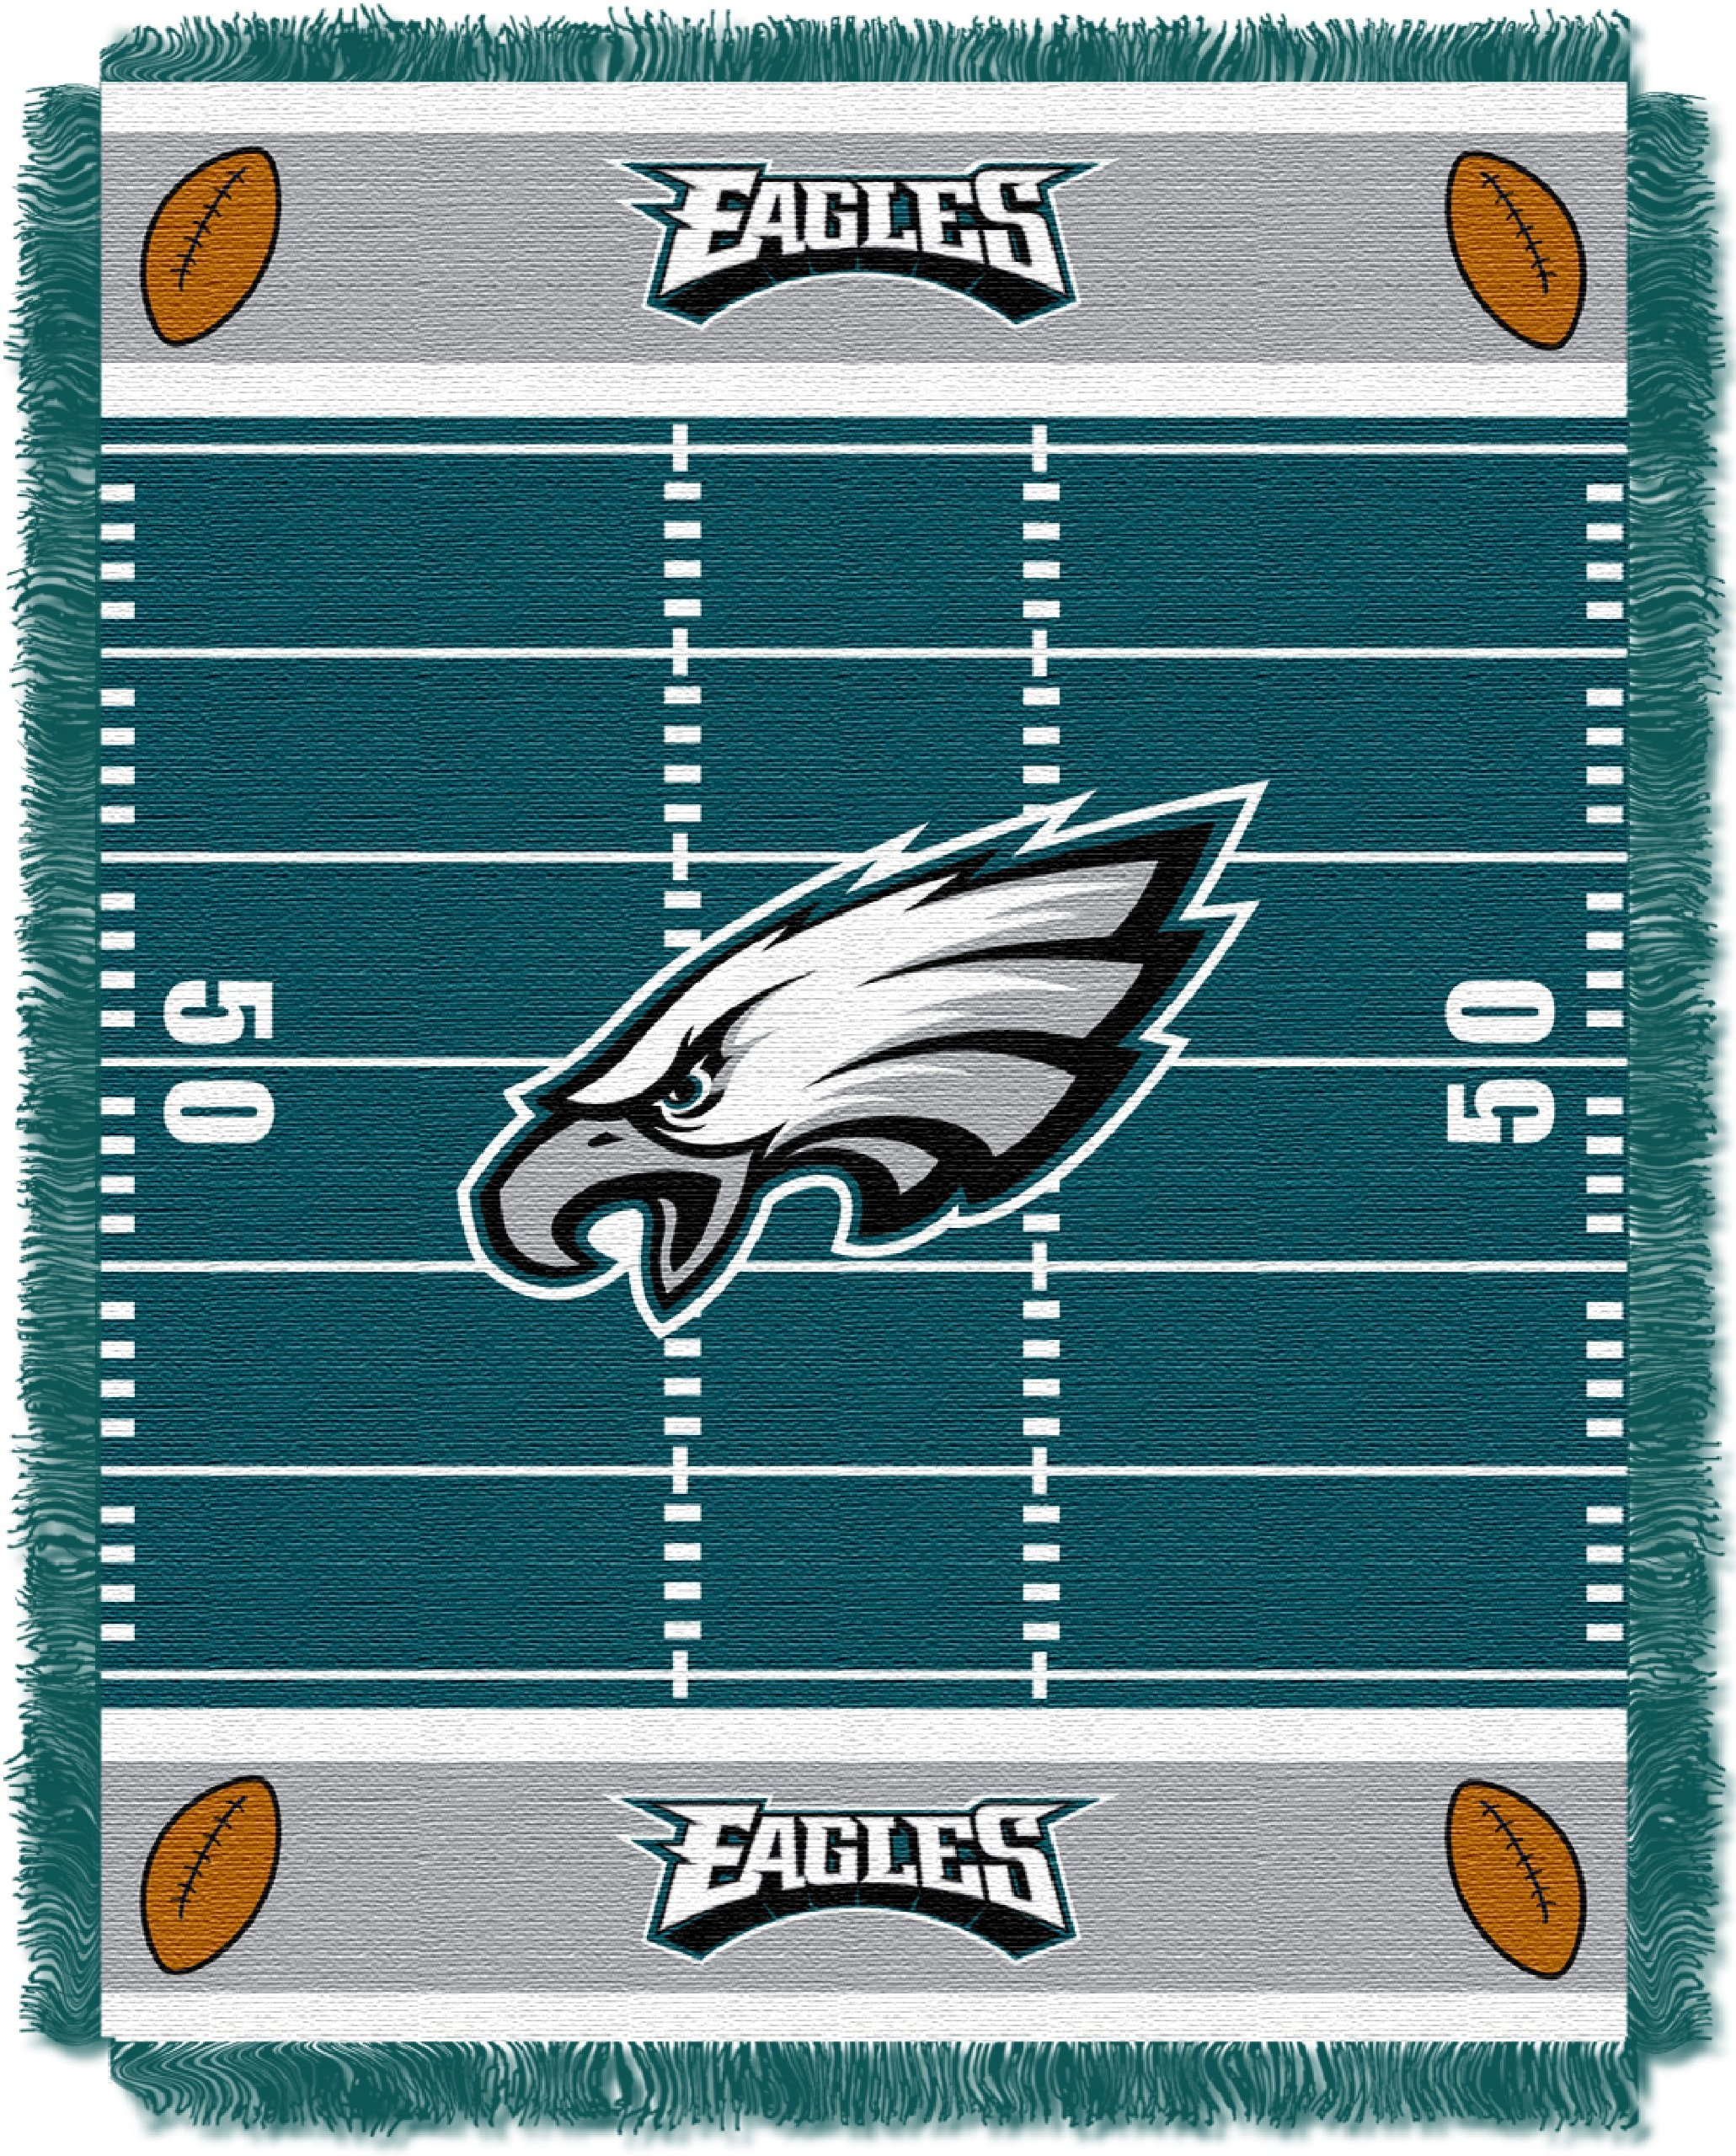 The Northwest Company Officially Licensed NFL Philadelphia Eagles Field Bear Woven Jacquard Baby Throw Blanket, 36'' x 46'', Multi Color by The Northwest Company